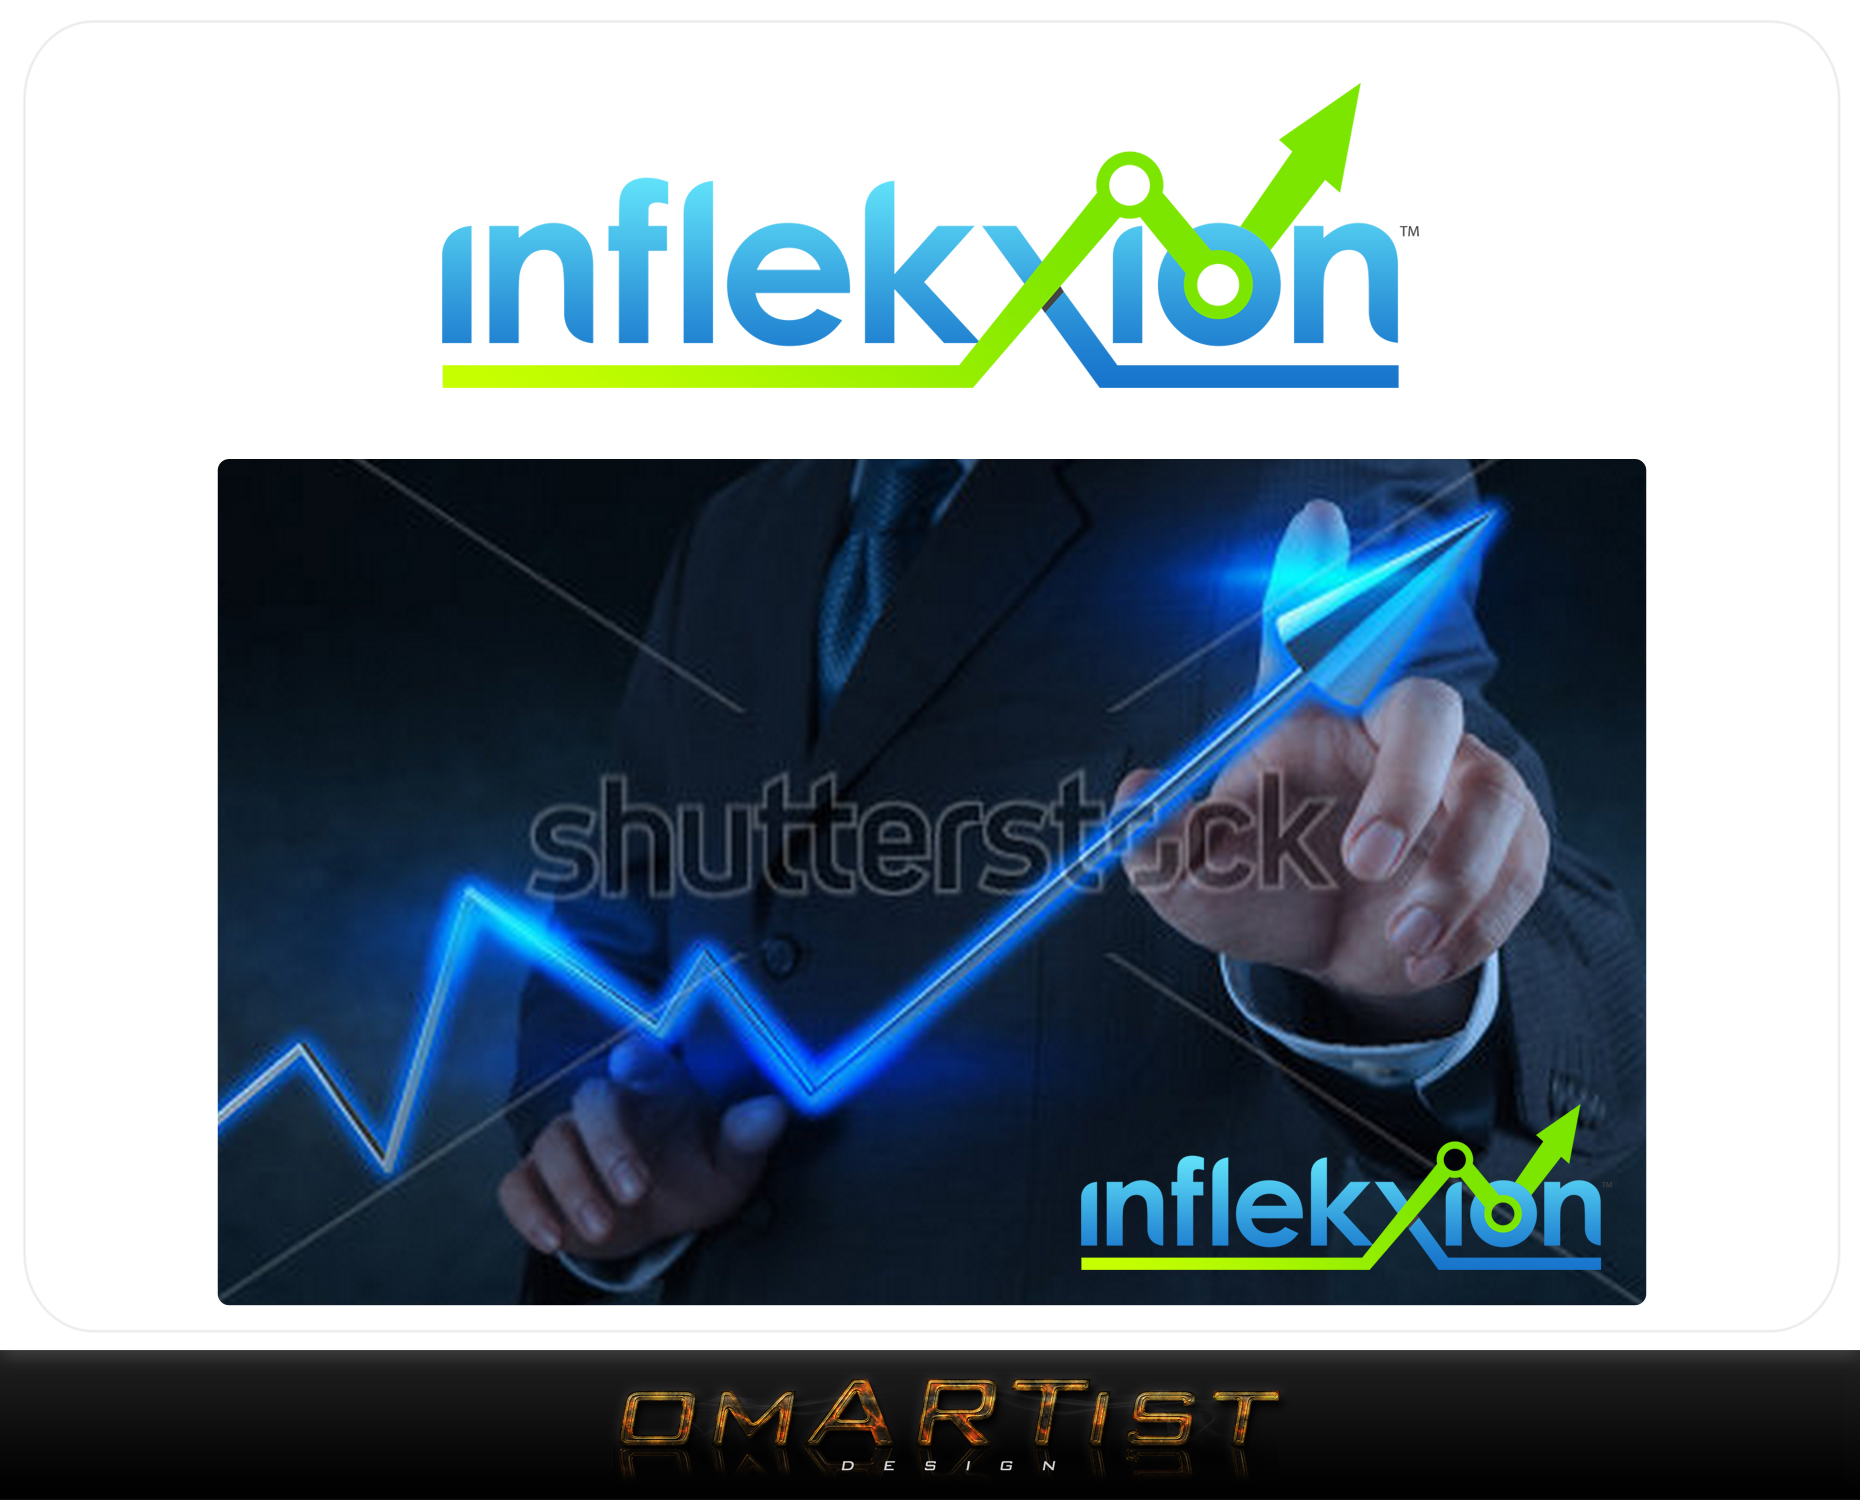 Logo Design by omARTist - Entry No. 202 in the Logo Design Contest Professional Logo Design for Inflekxion.